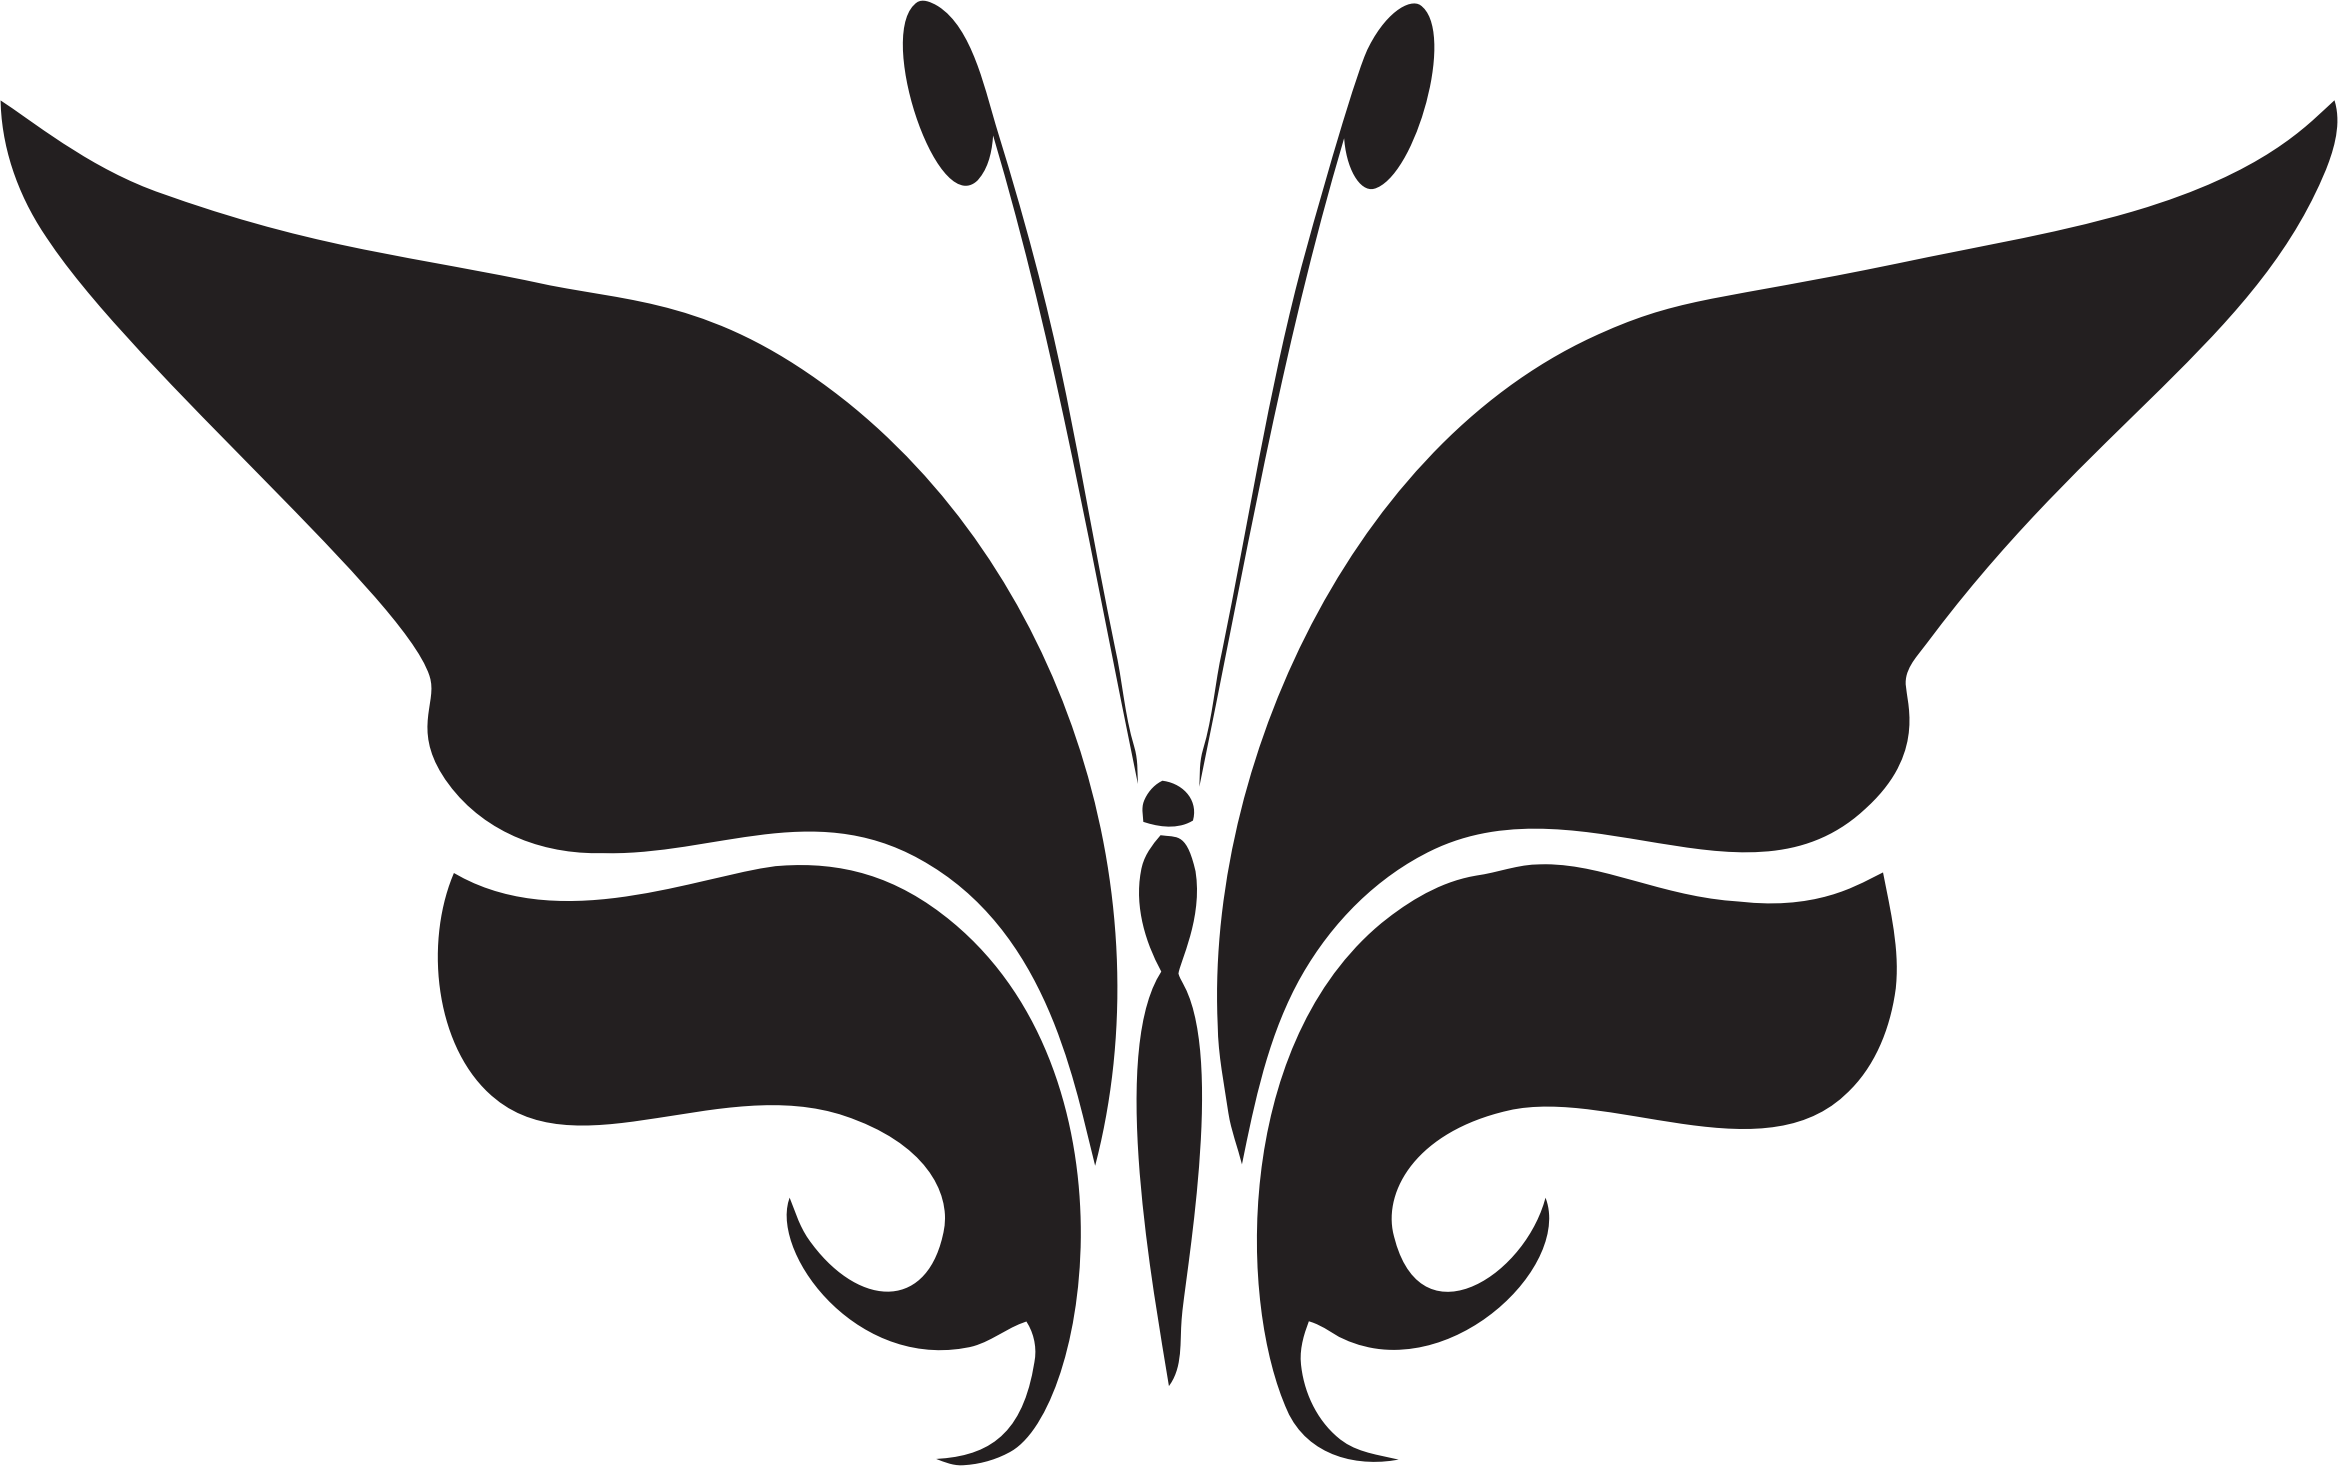 Abstract silhouette big image. Feather clipart butterfly